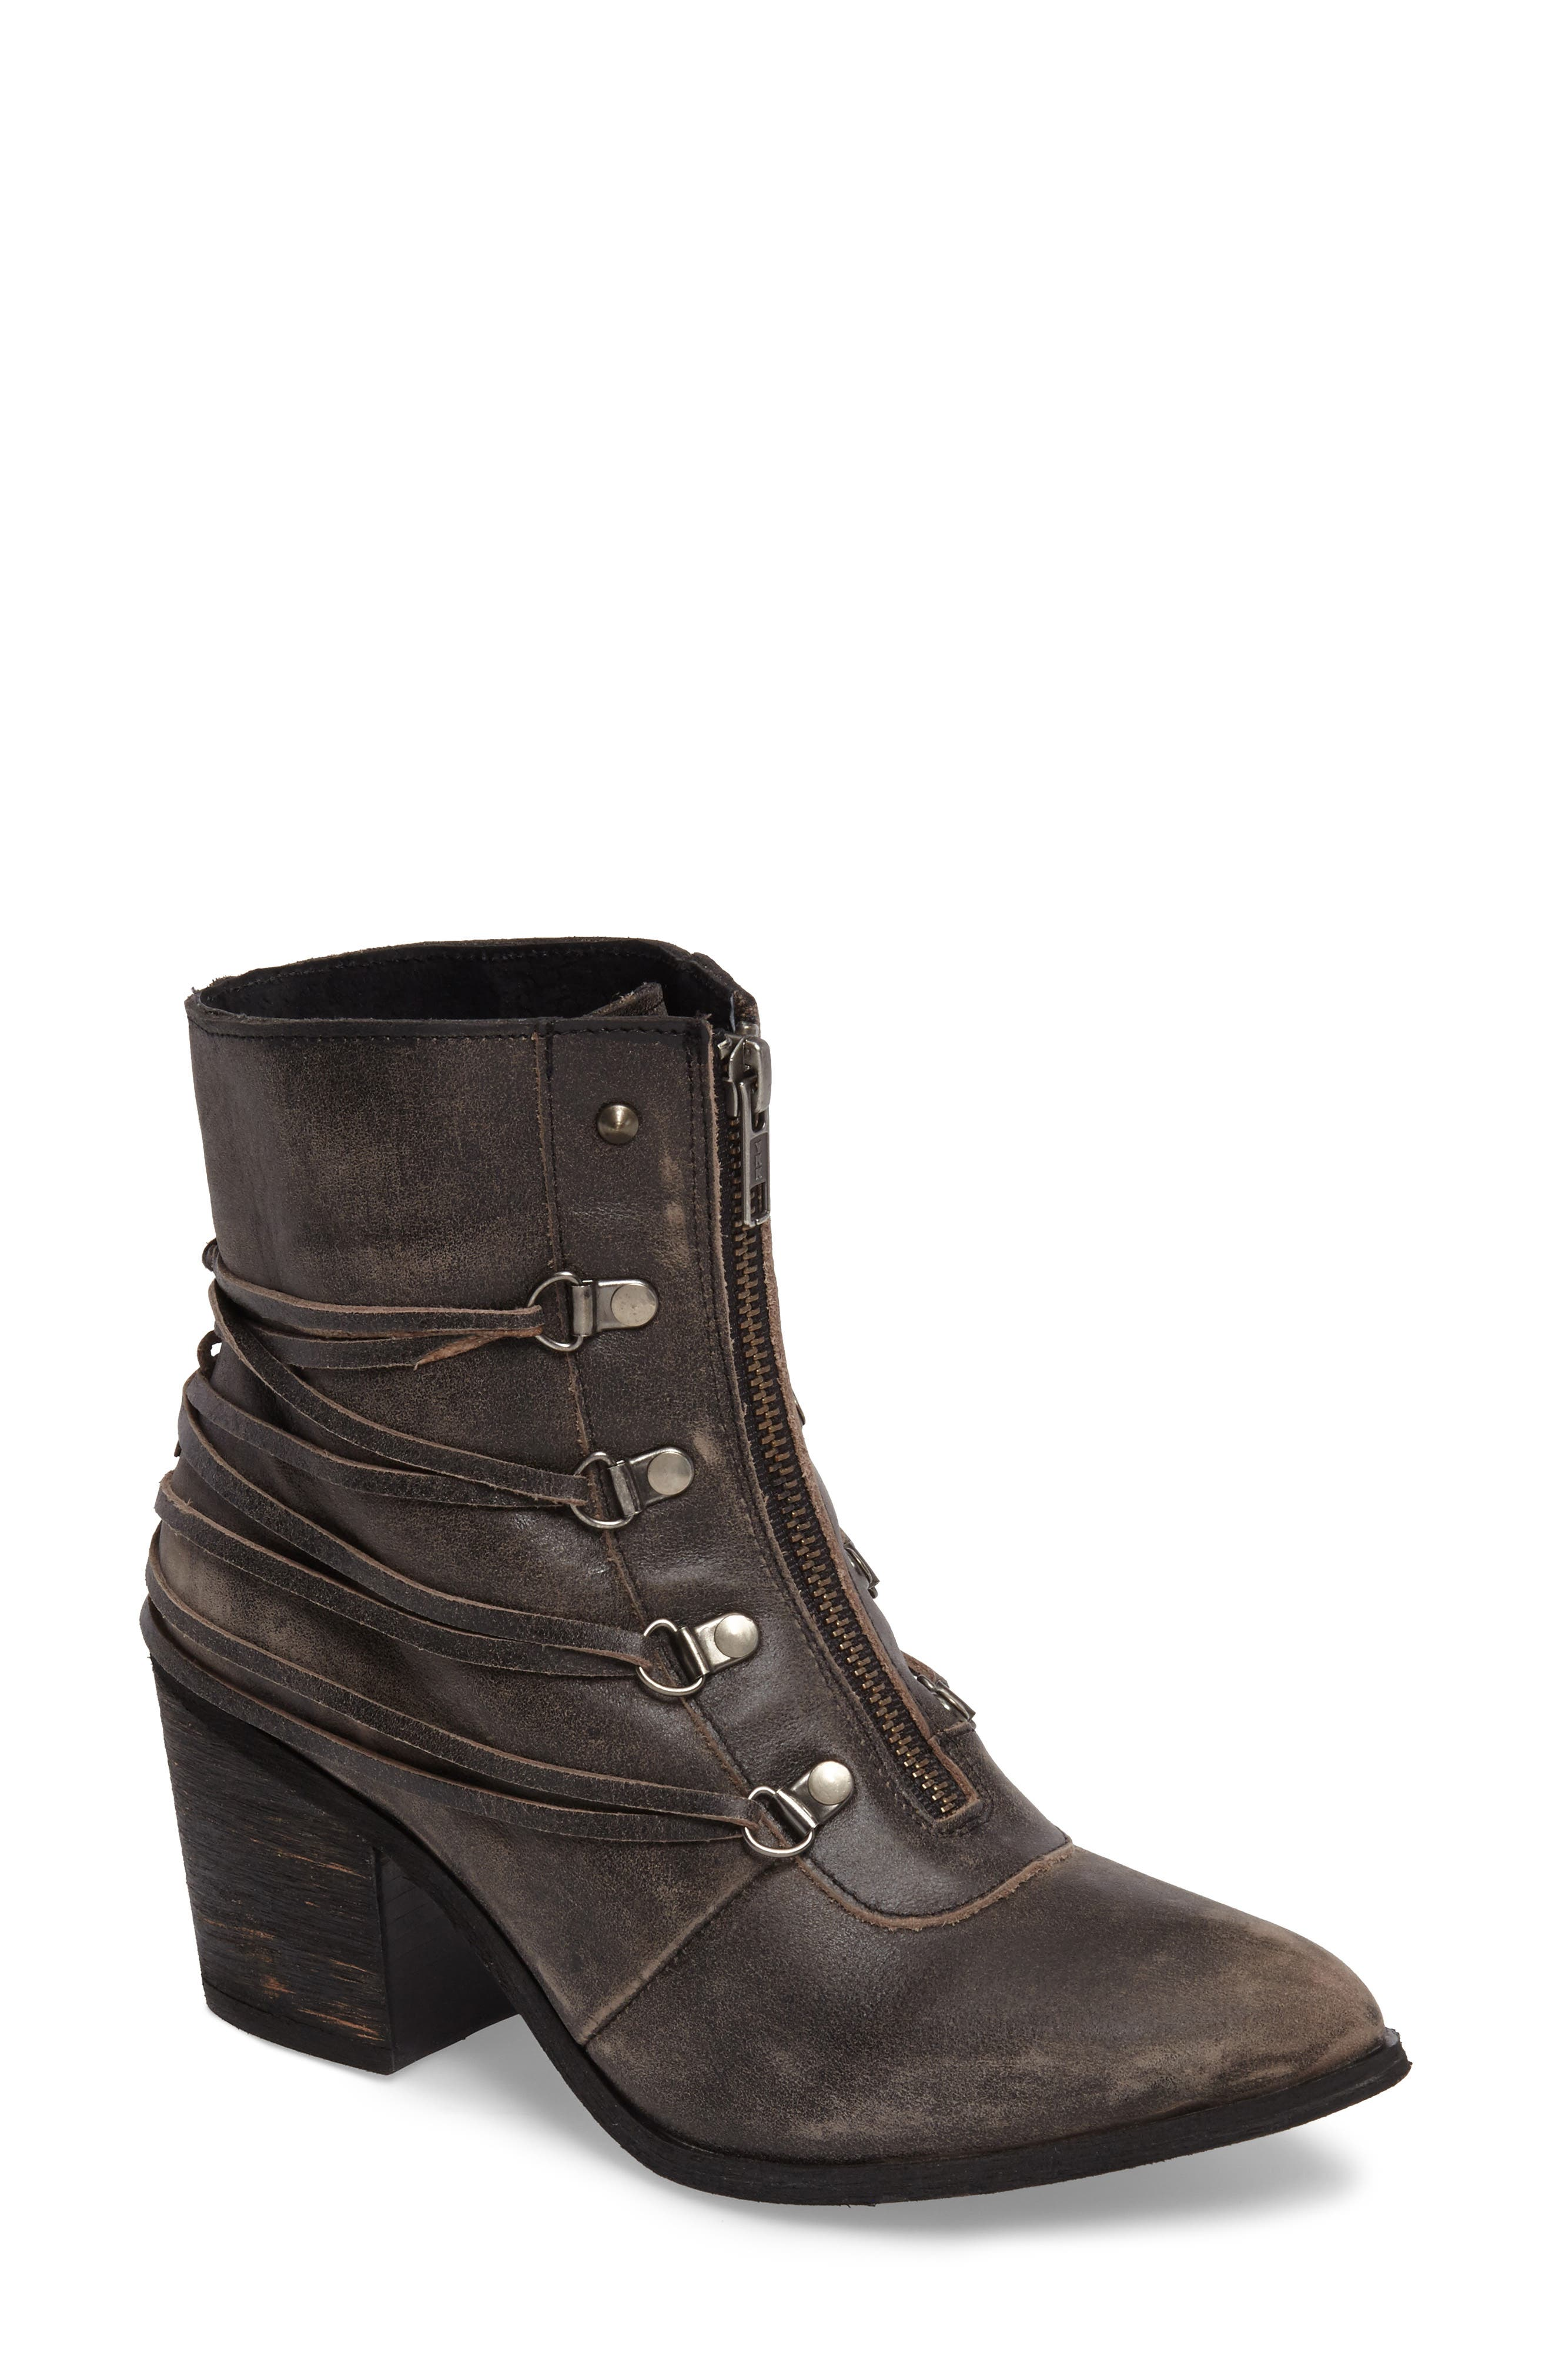 Peacekeeper Lace-Up Bootie,                         Main,                         color, 001